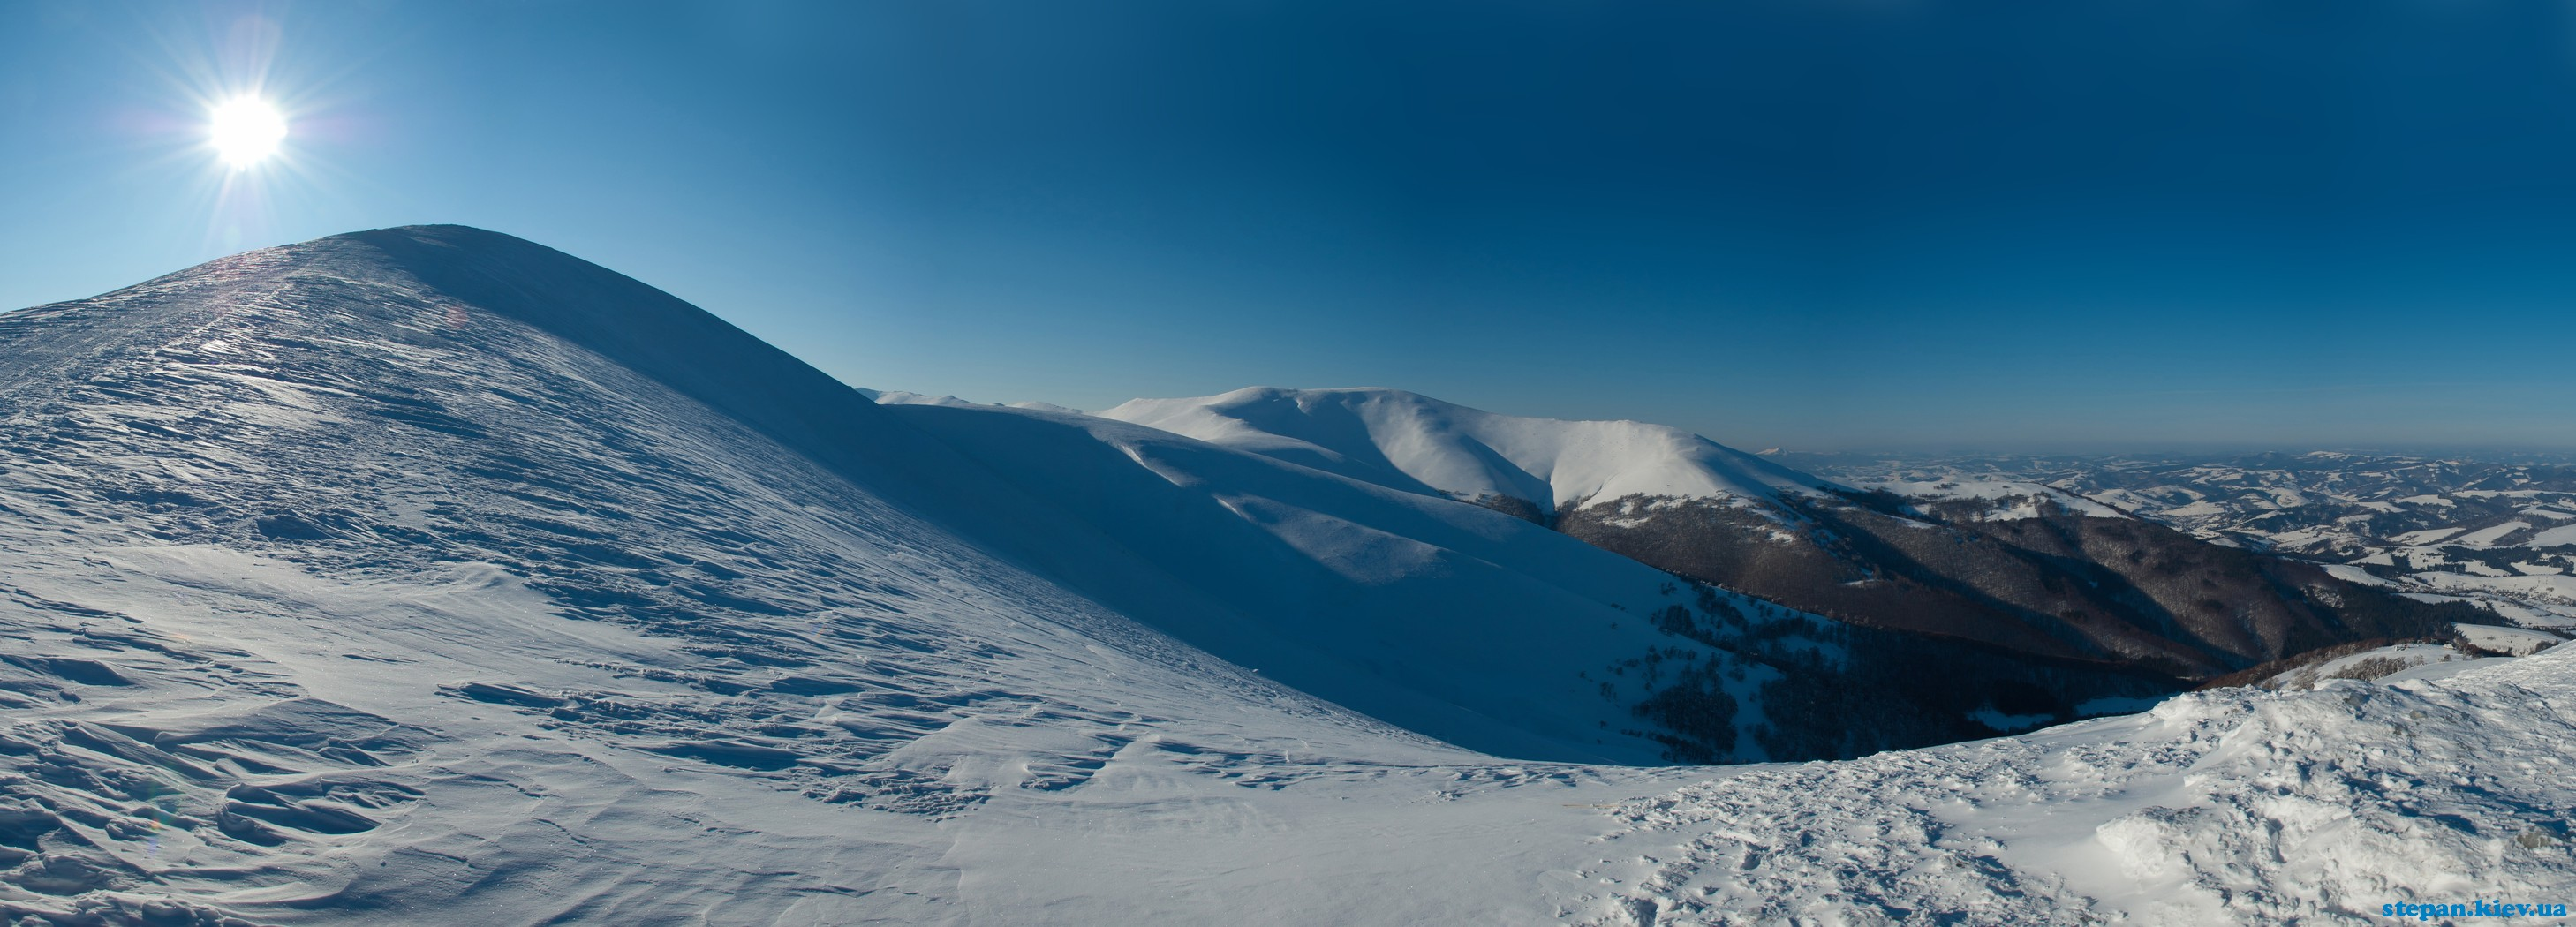 Mt Gemba, our local freeride Zion :), Podobovets